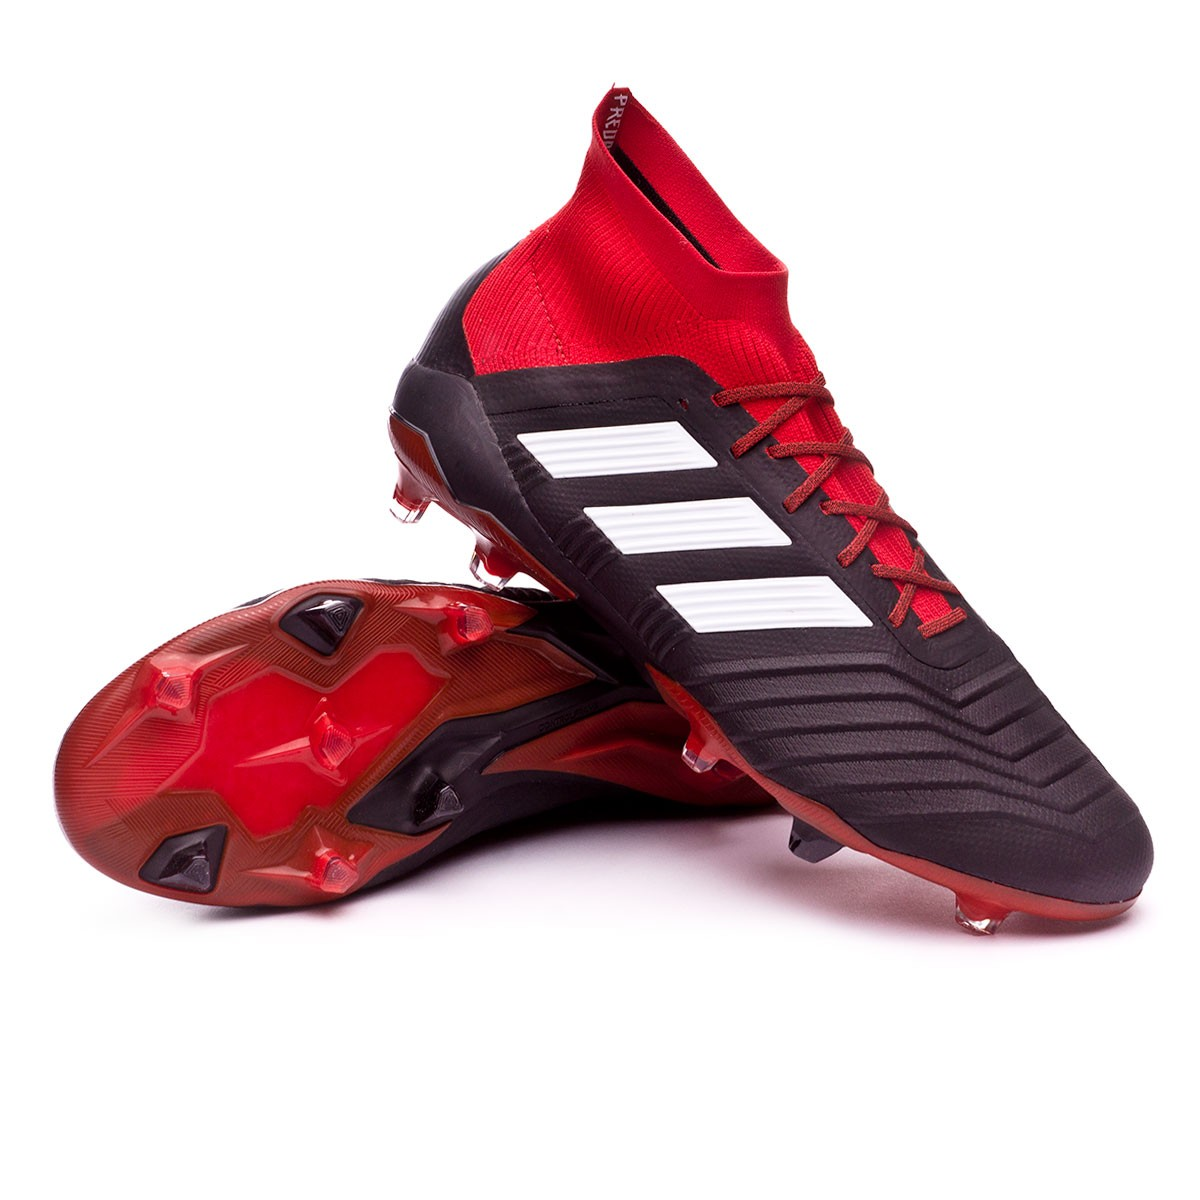 size 40 8b848 5175d adidas Predator 18.1 FG Football Boots. Core black-White-Red ...